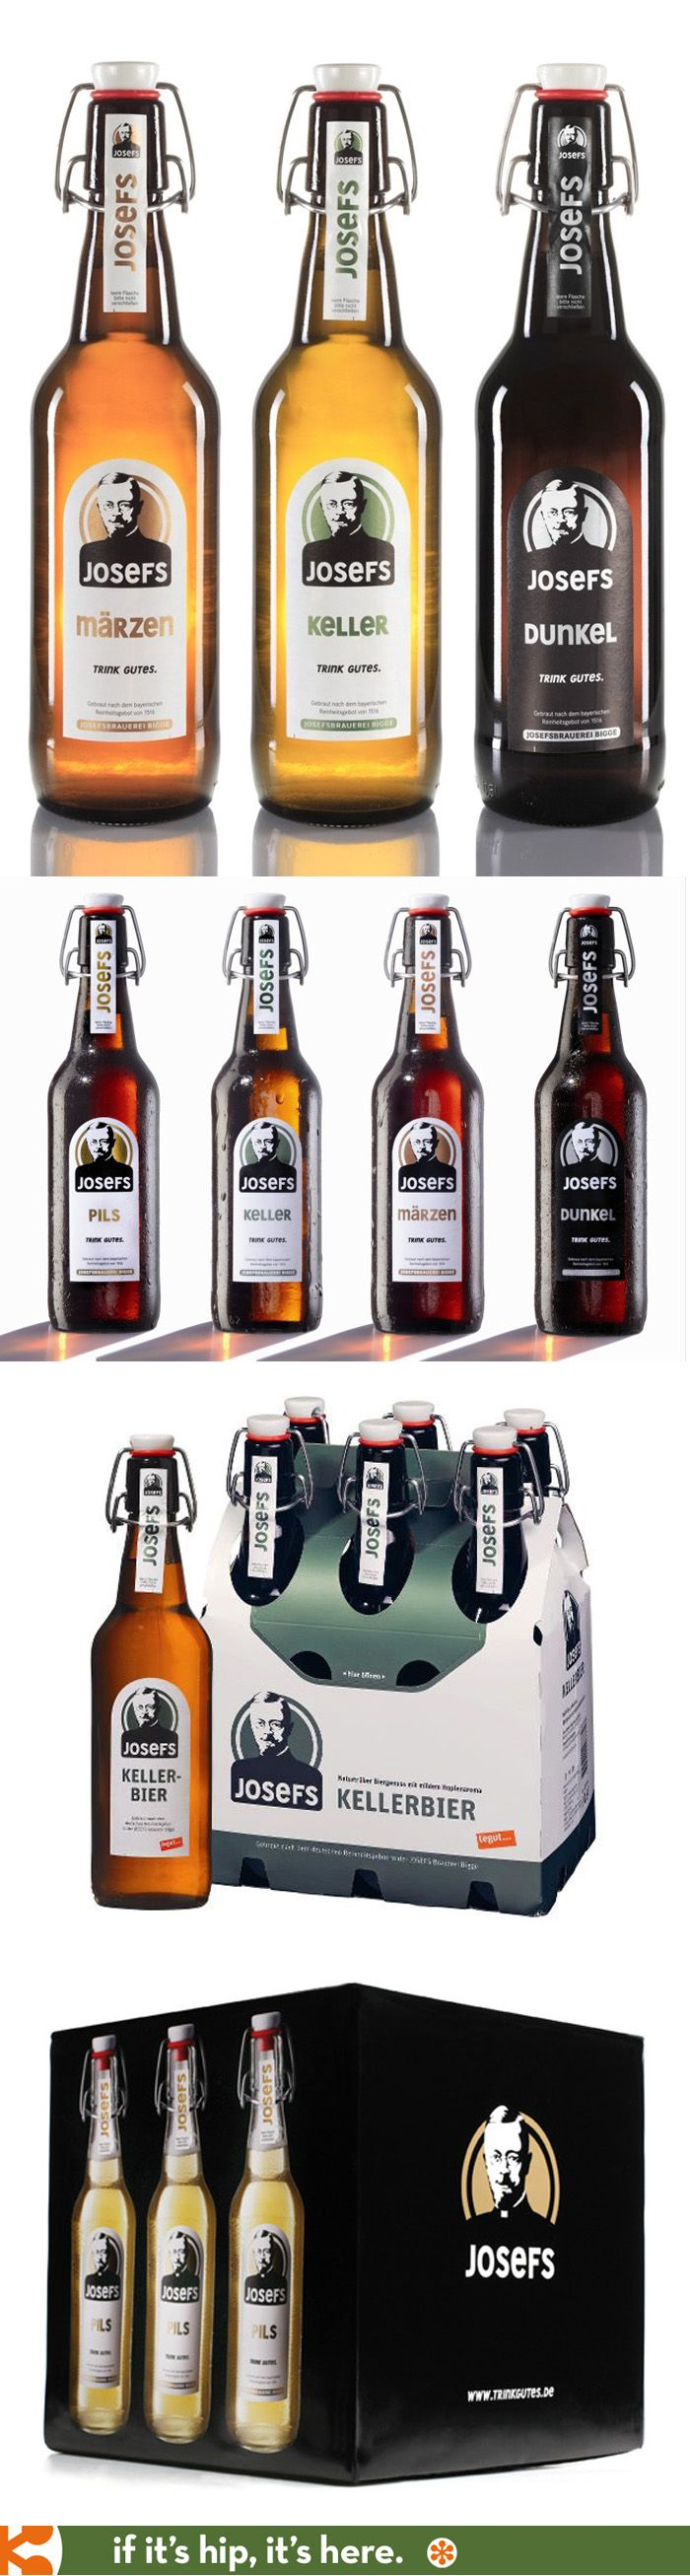 Josefs Beer packaging | Packaging Design Bottles and Cans ...